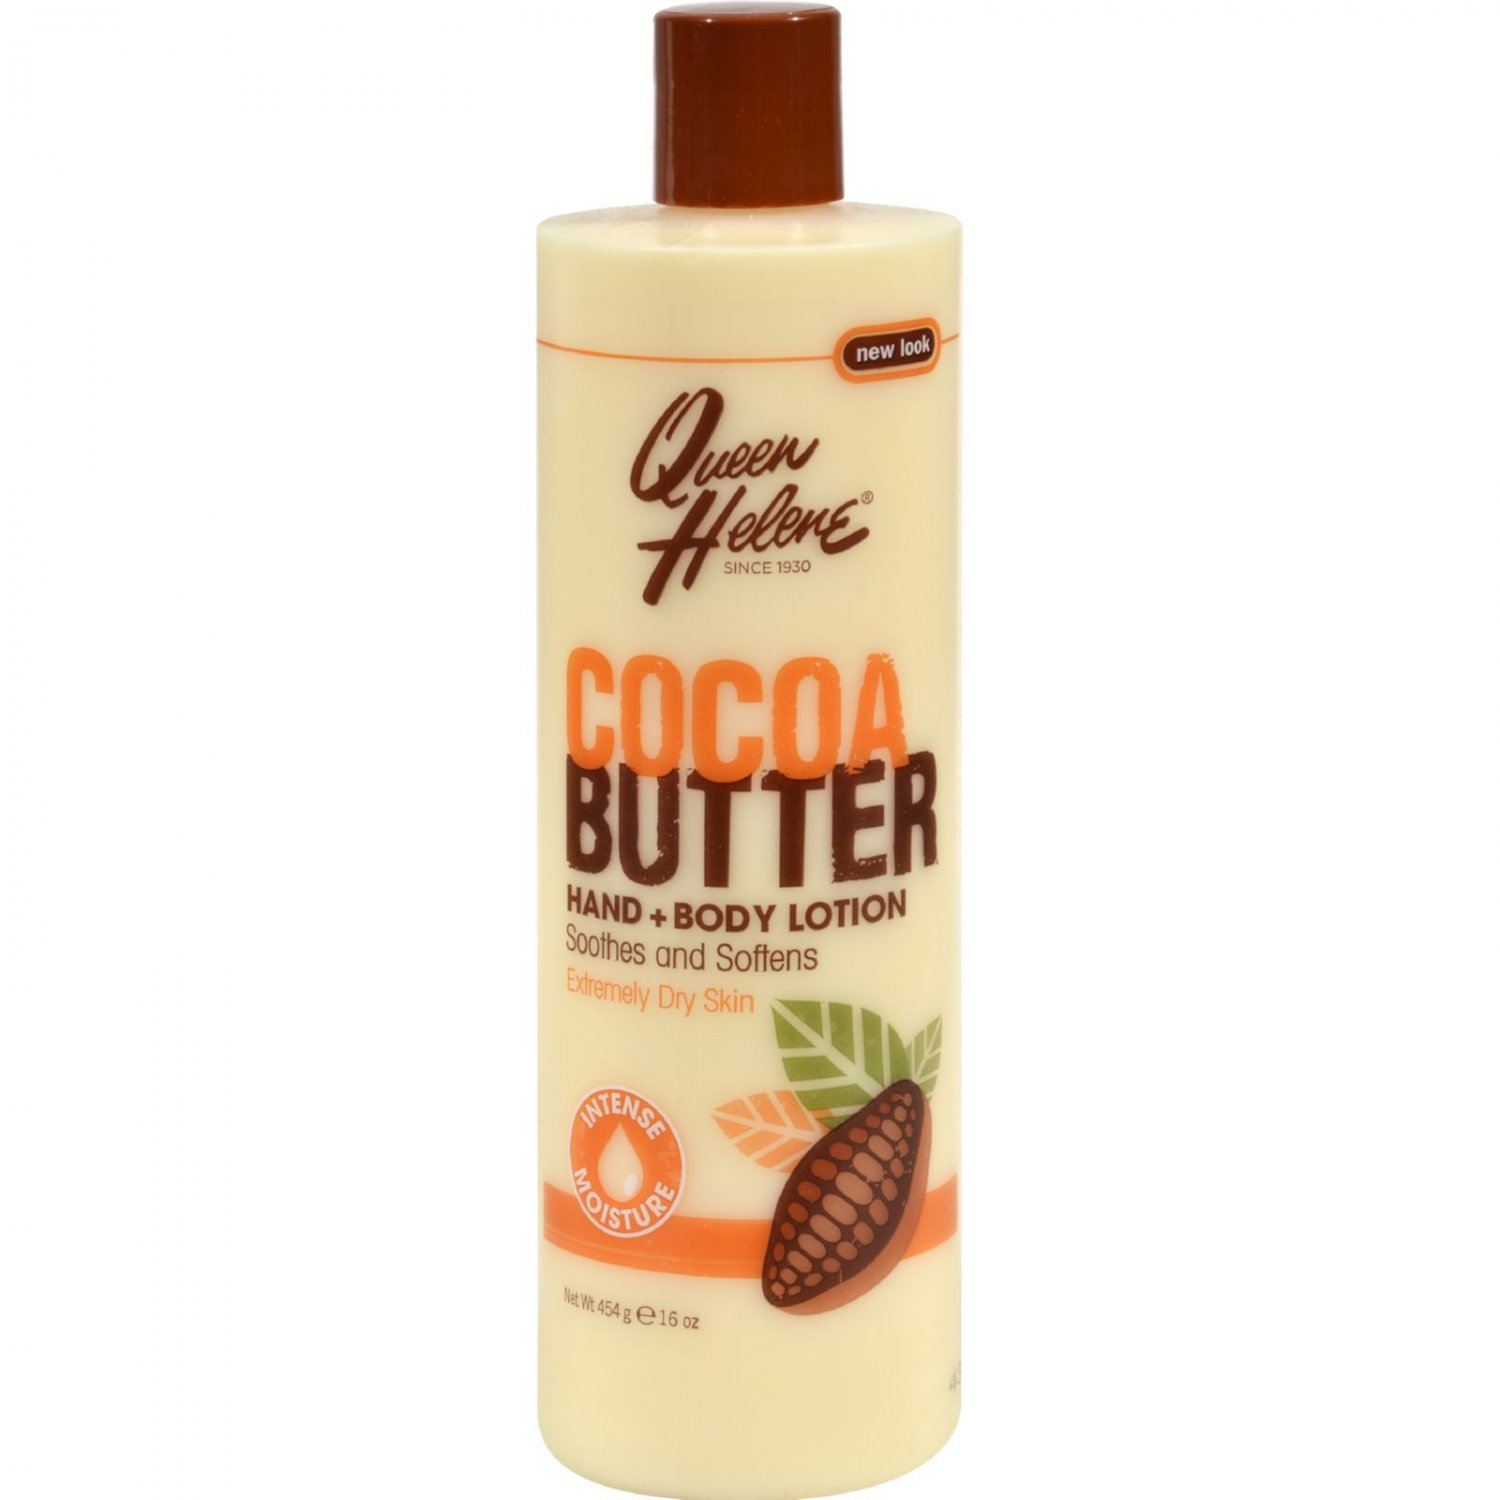 Queen Helene Cocoa Butter Hand And Body Lotion - 16 fl oz